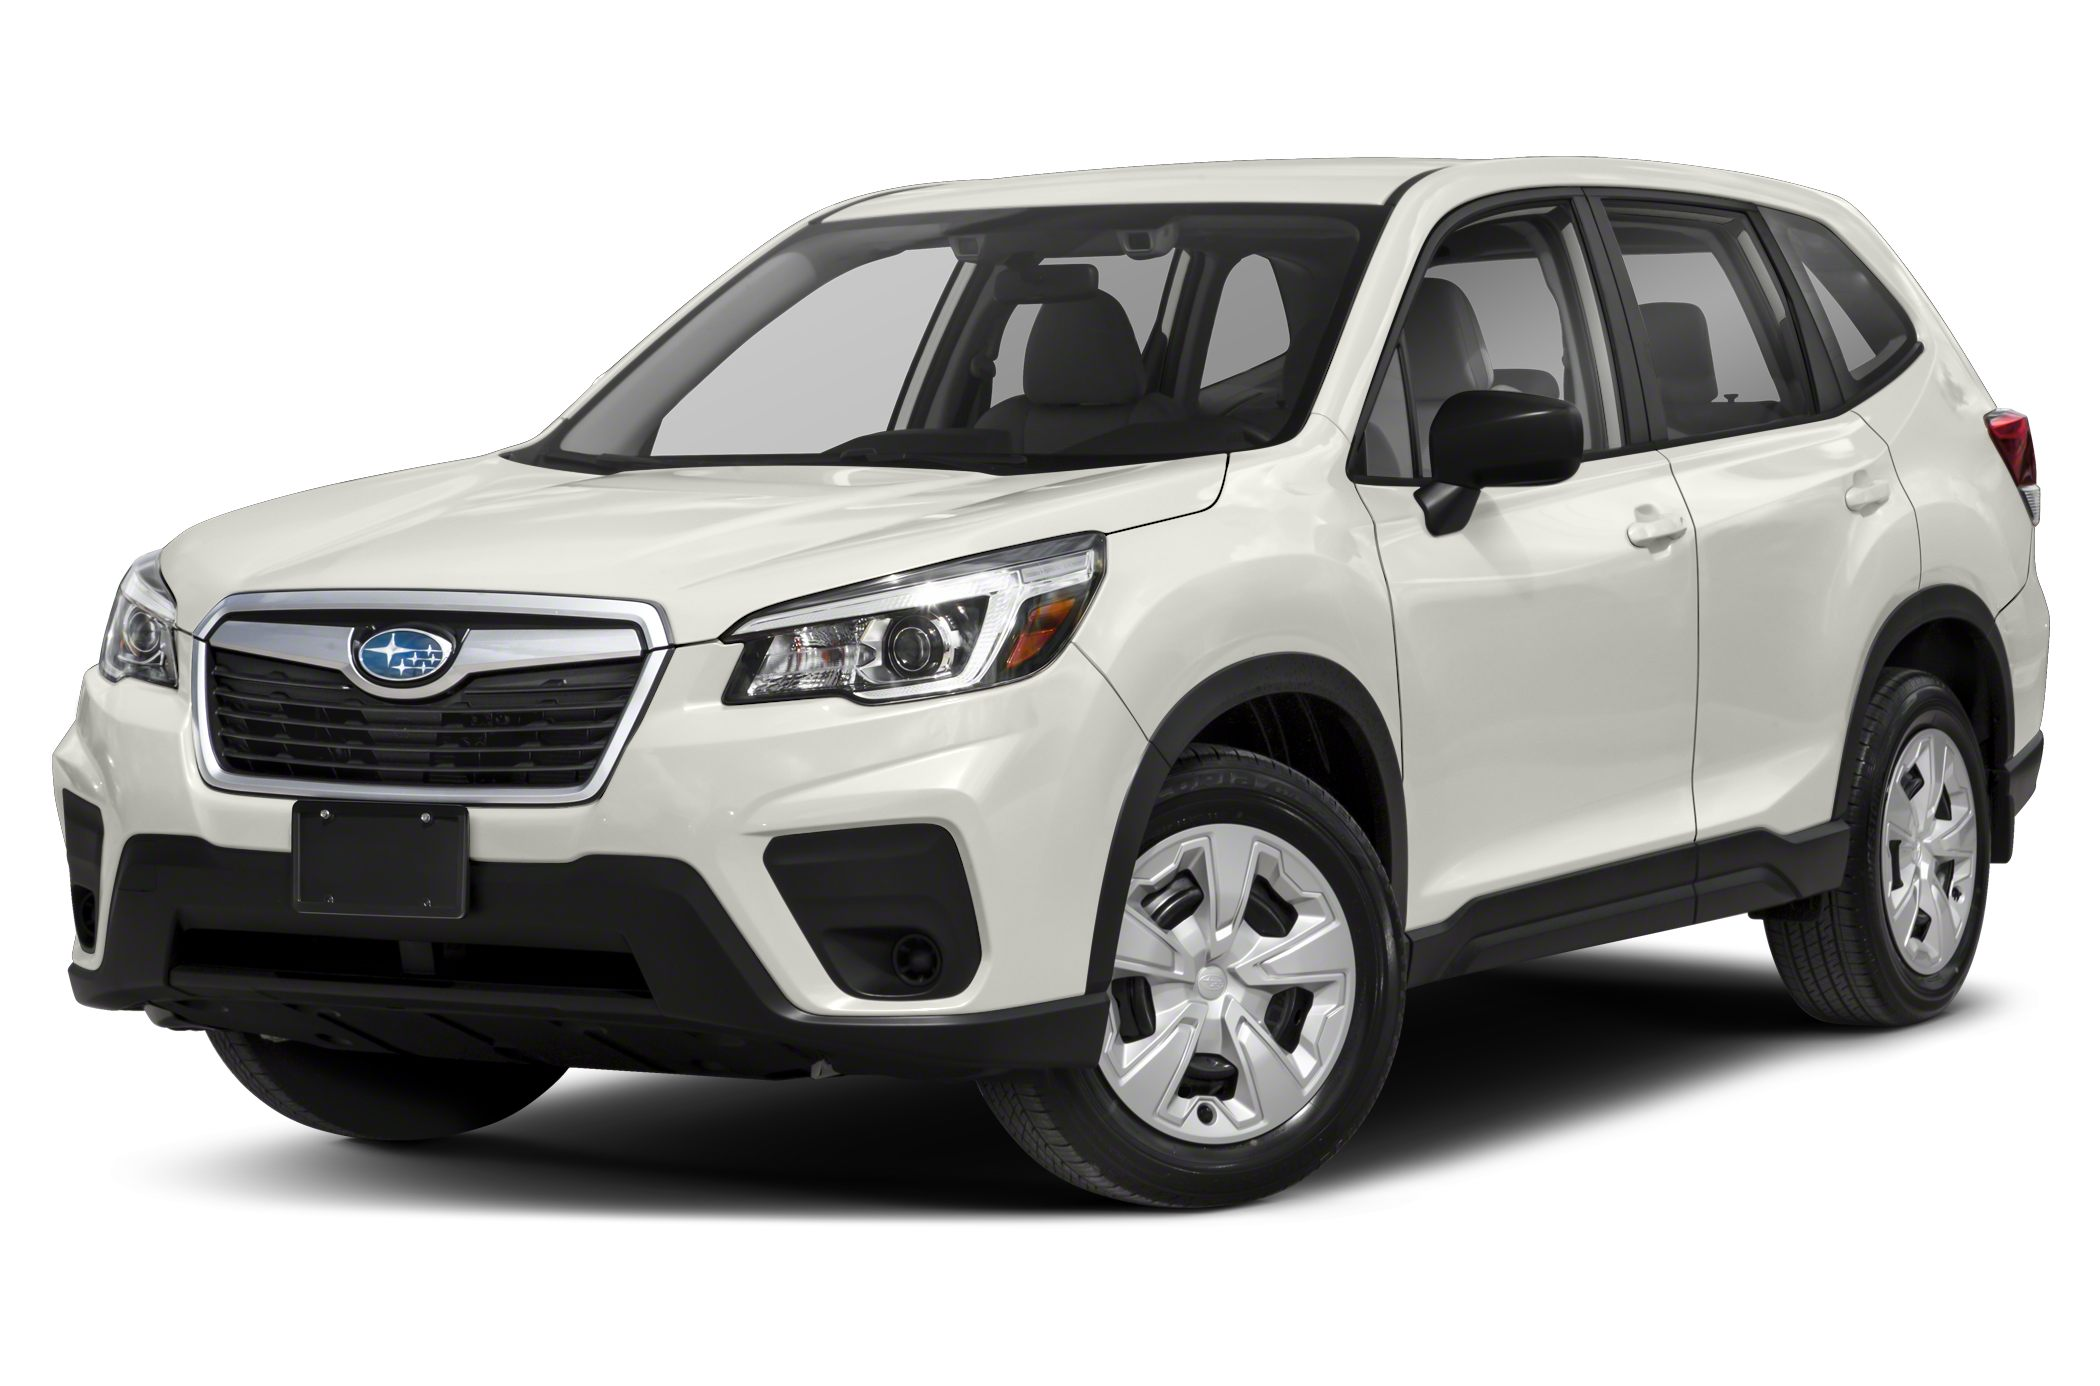 2020 Subaru Forester Safety Features